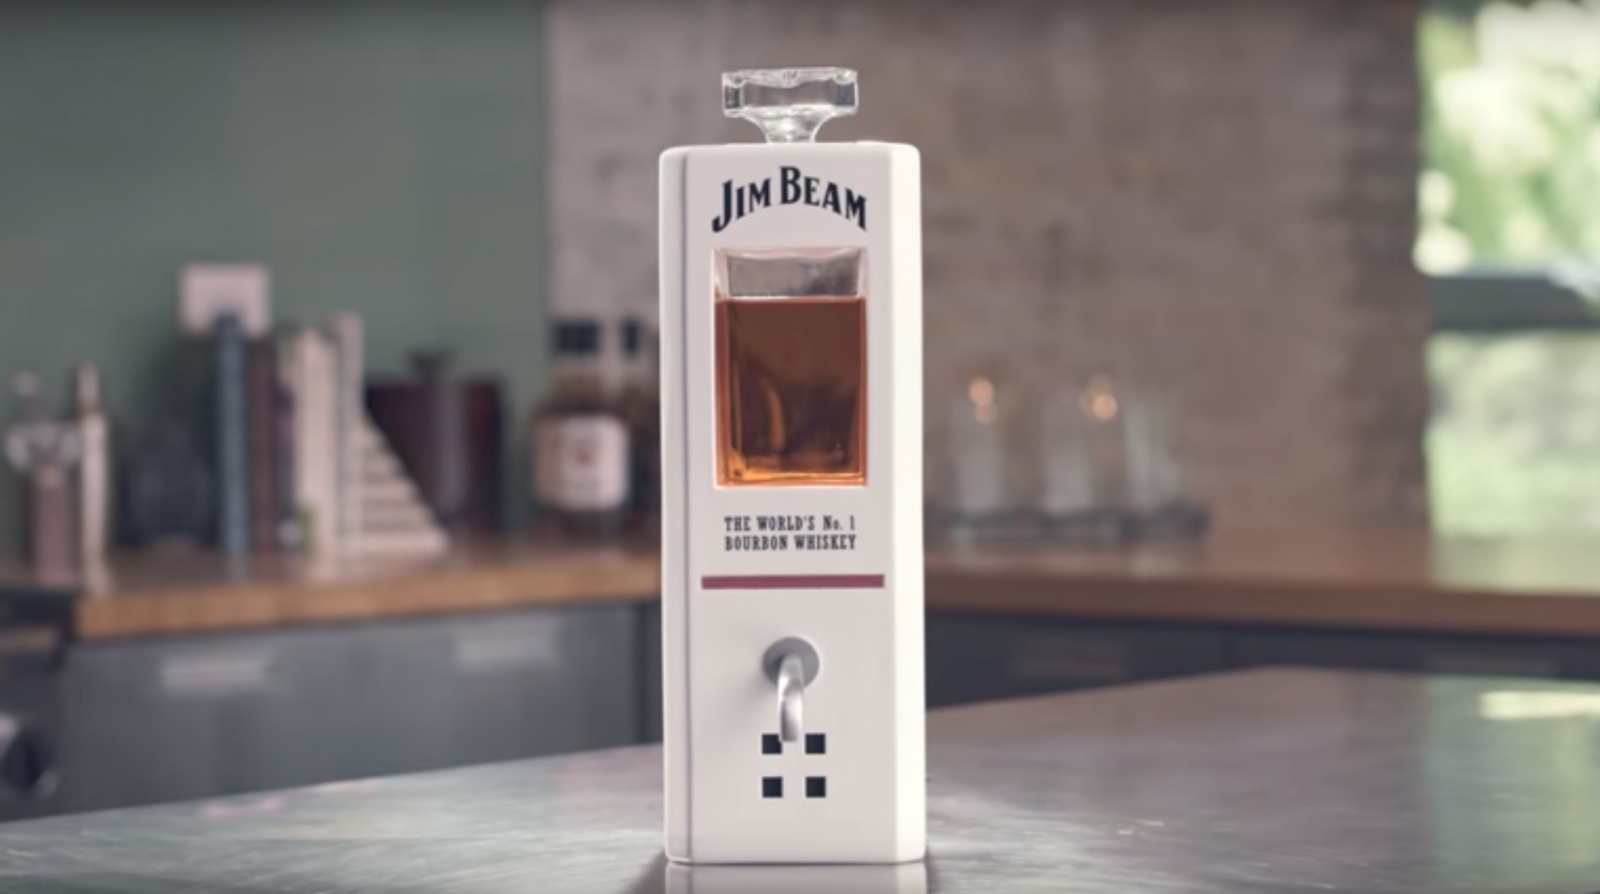 Jim Beam Selling Voice-Activated Decanter